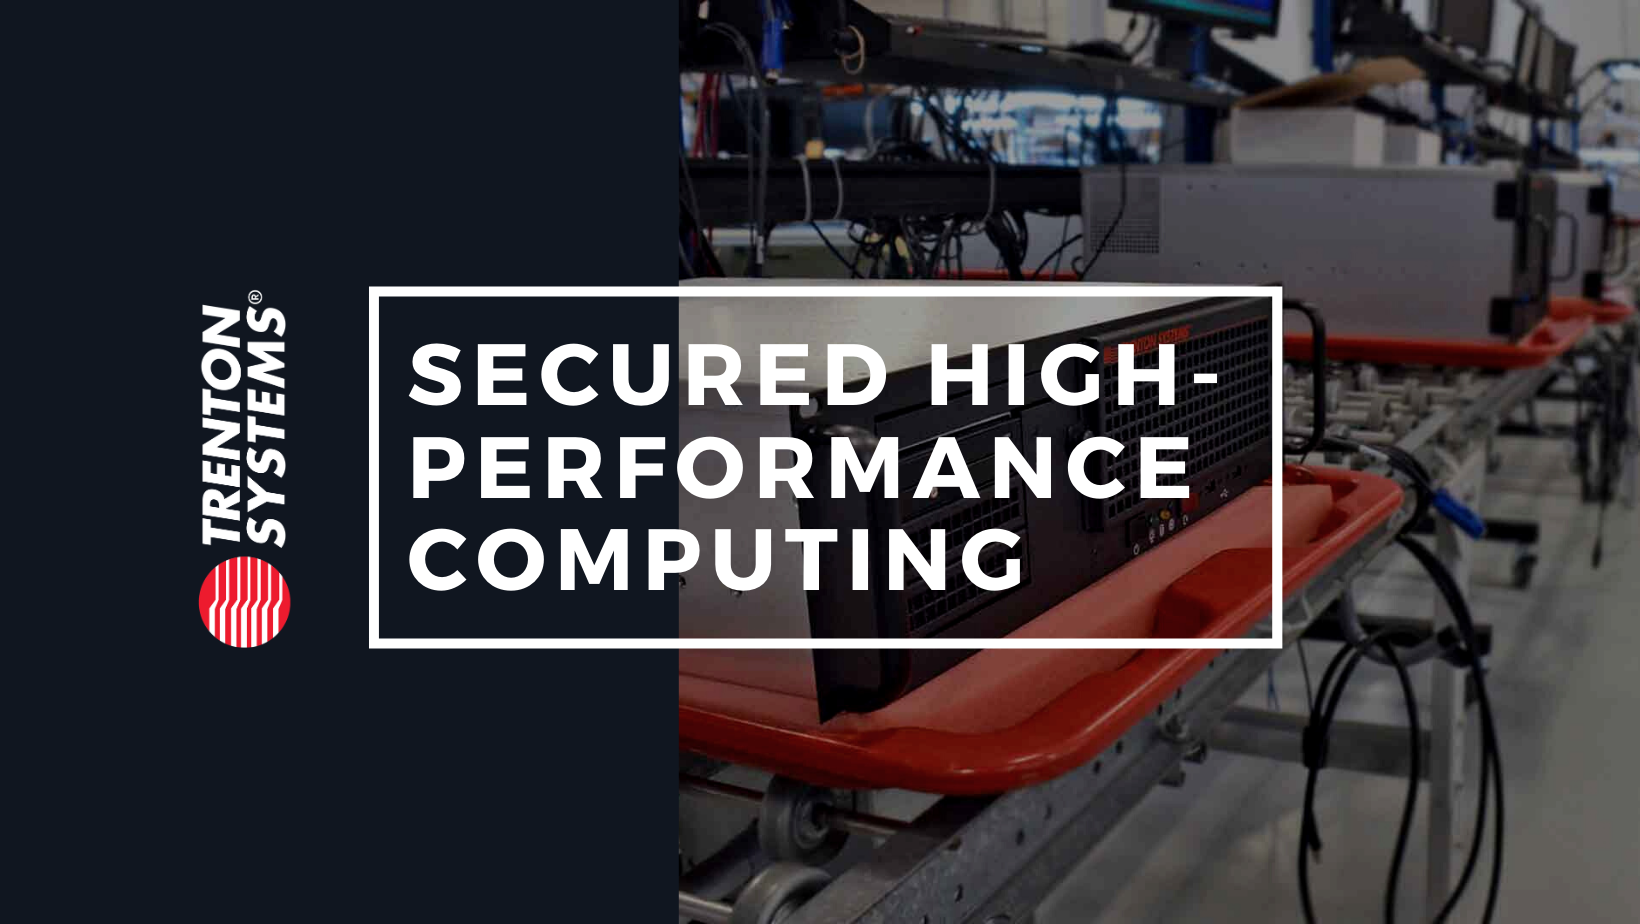 Trenton Systems is a provider of secure, high-performance computing solutions.